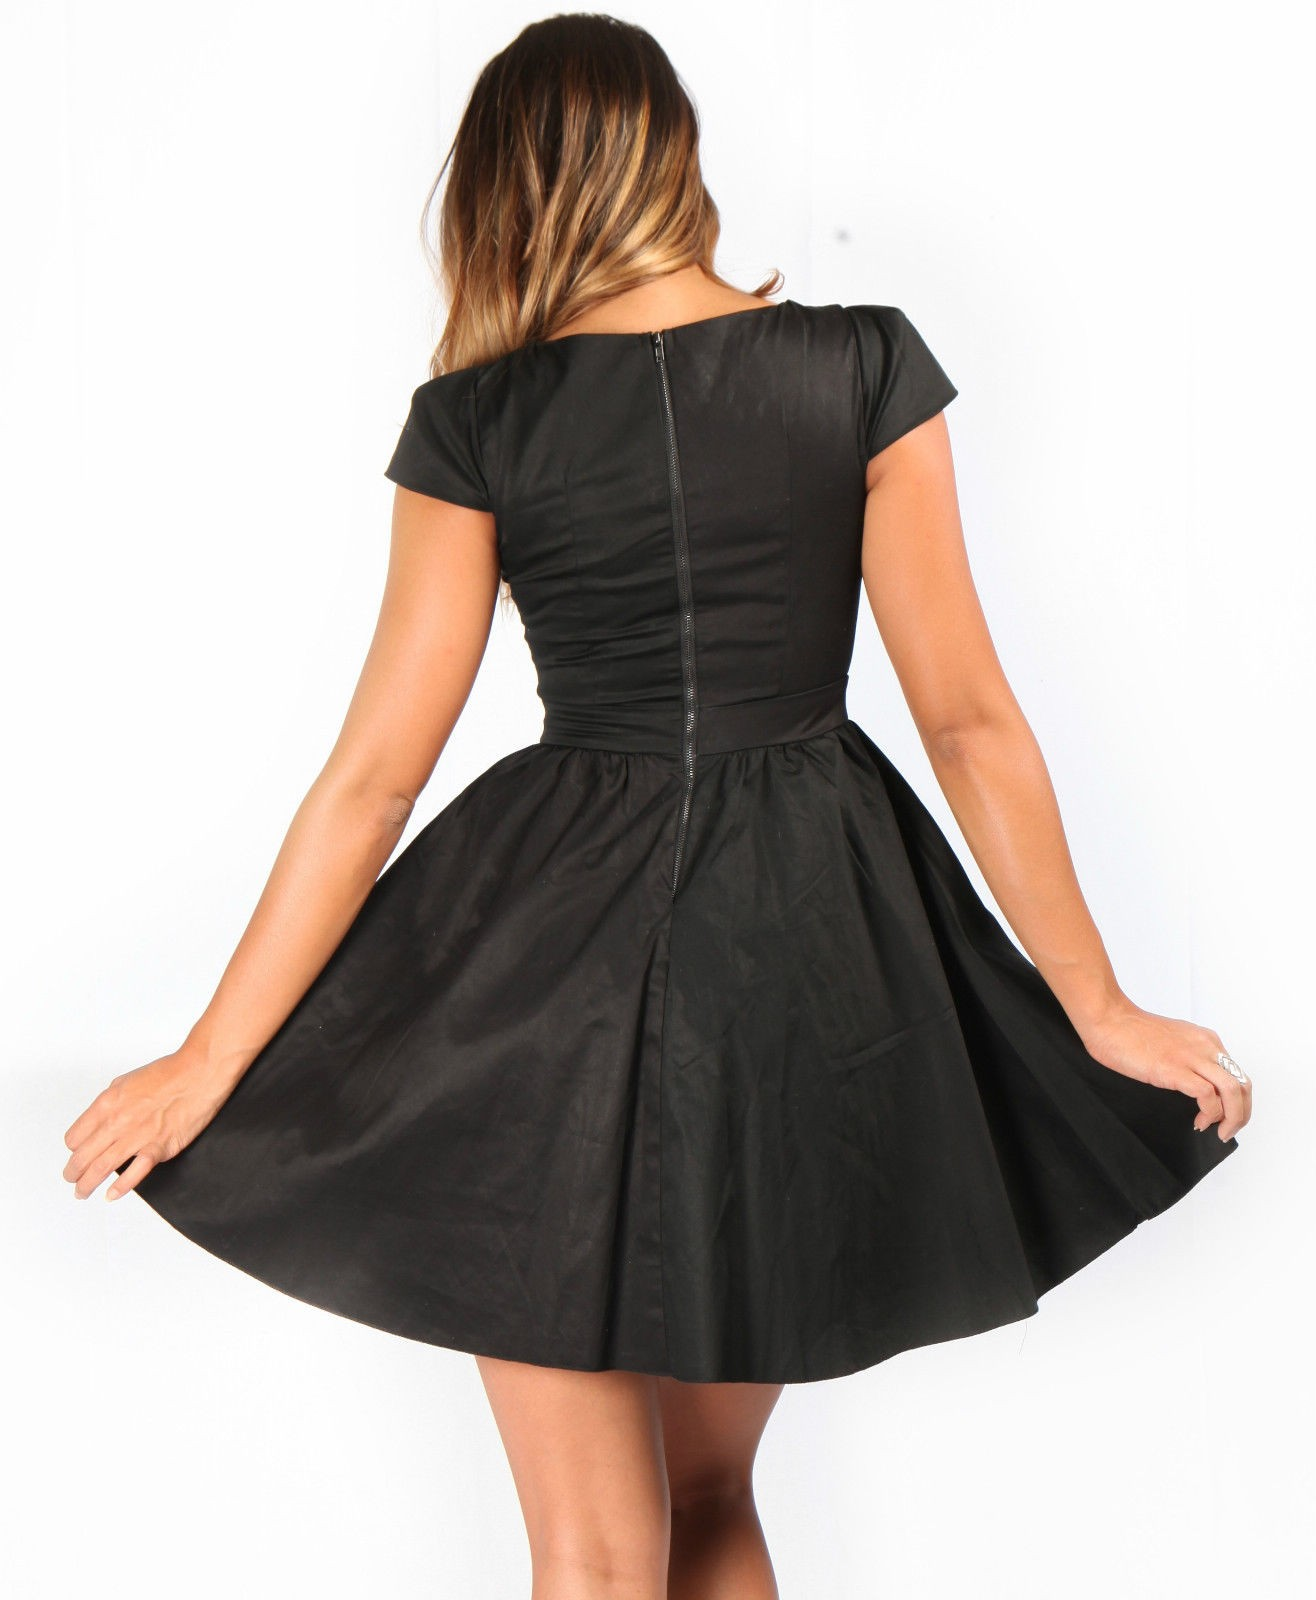 Black Skater Dress Round Neck